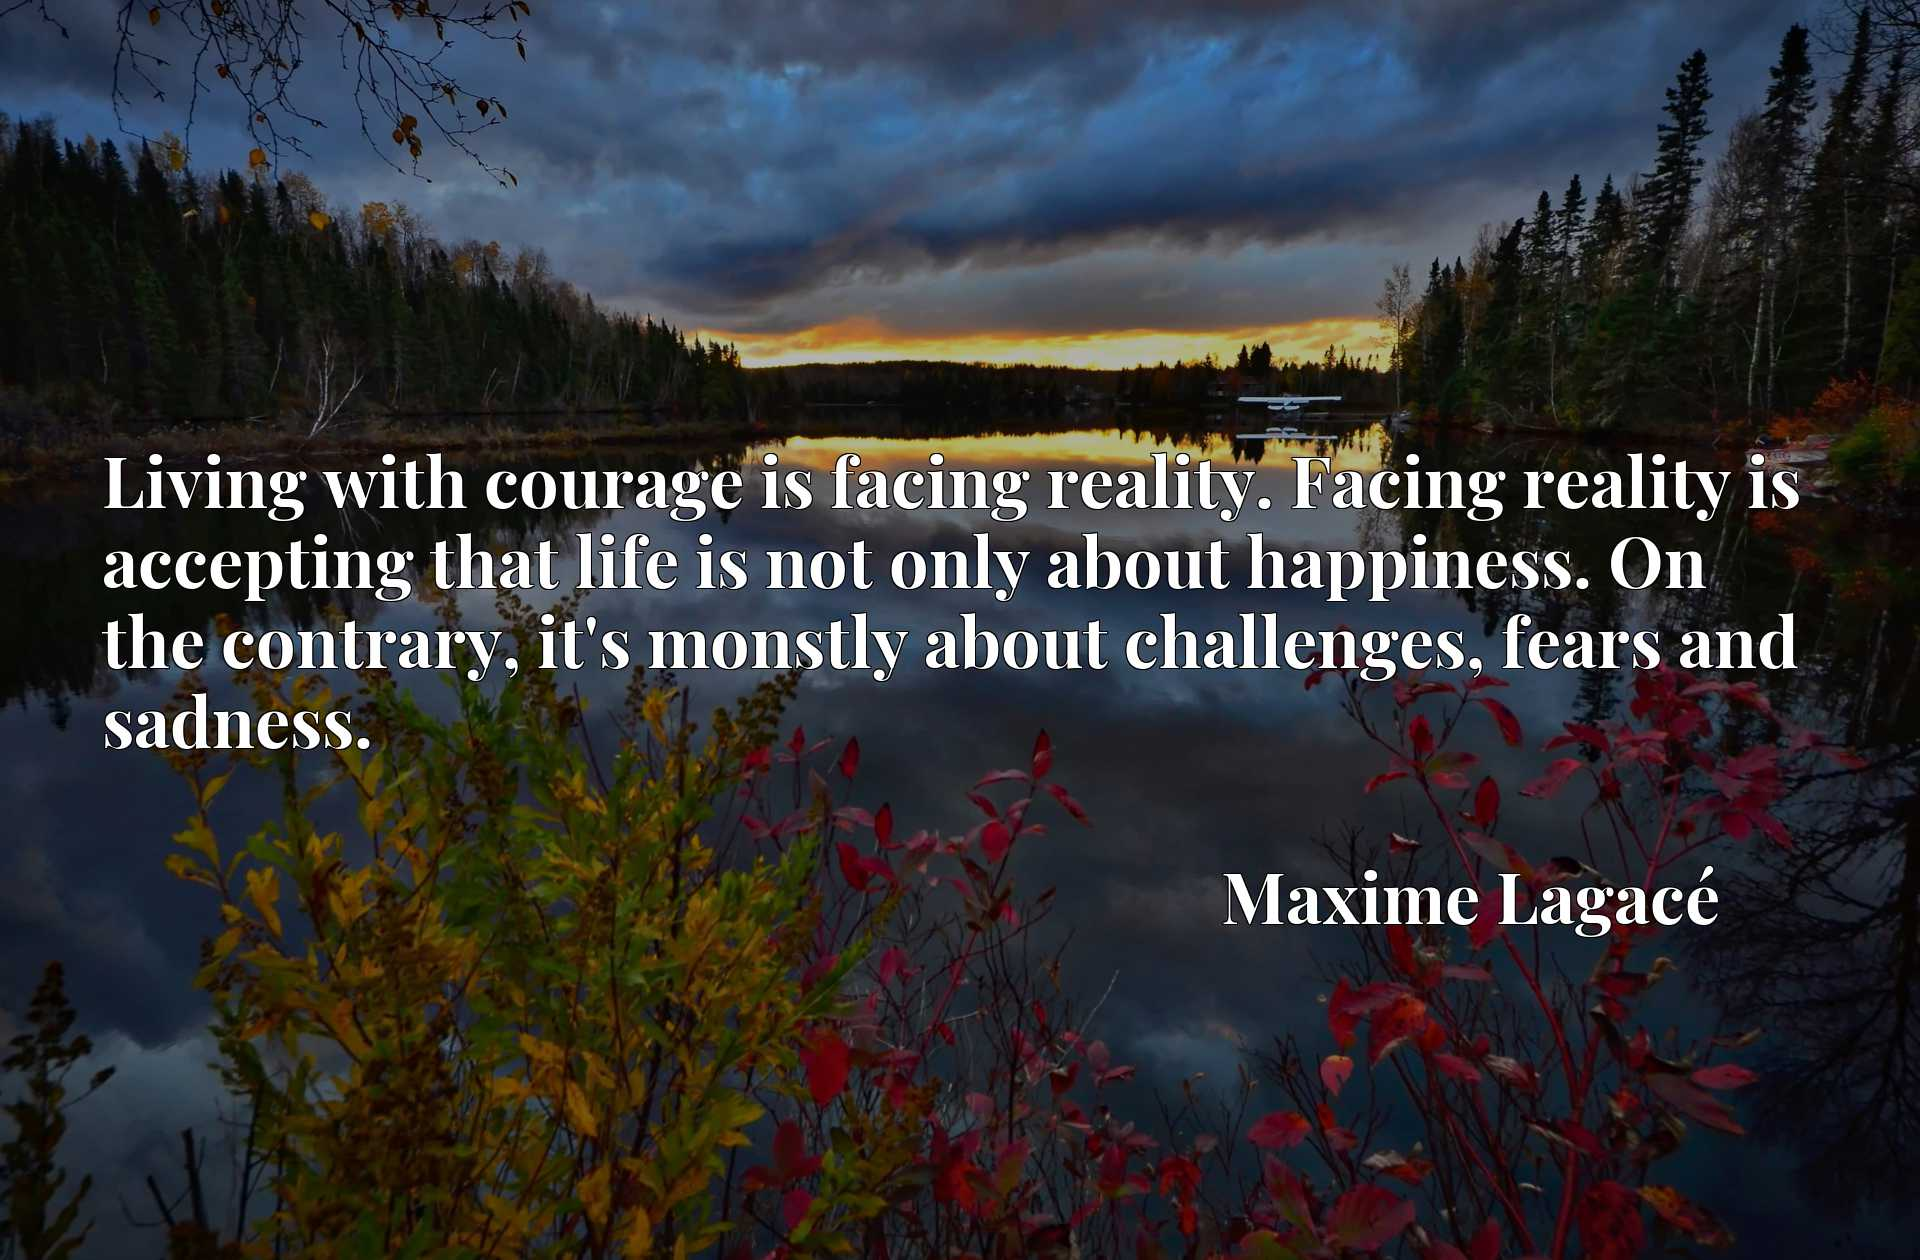 Living with courage is facing reality. Facing reality is accepting that life is not only about happiness. On the contrary, it's monstly about challenges, fears and sadness.